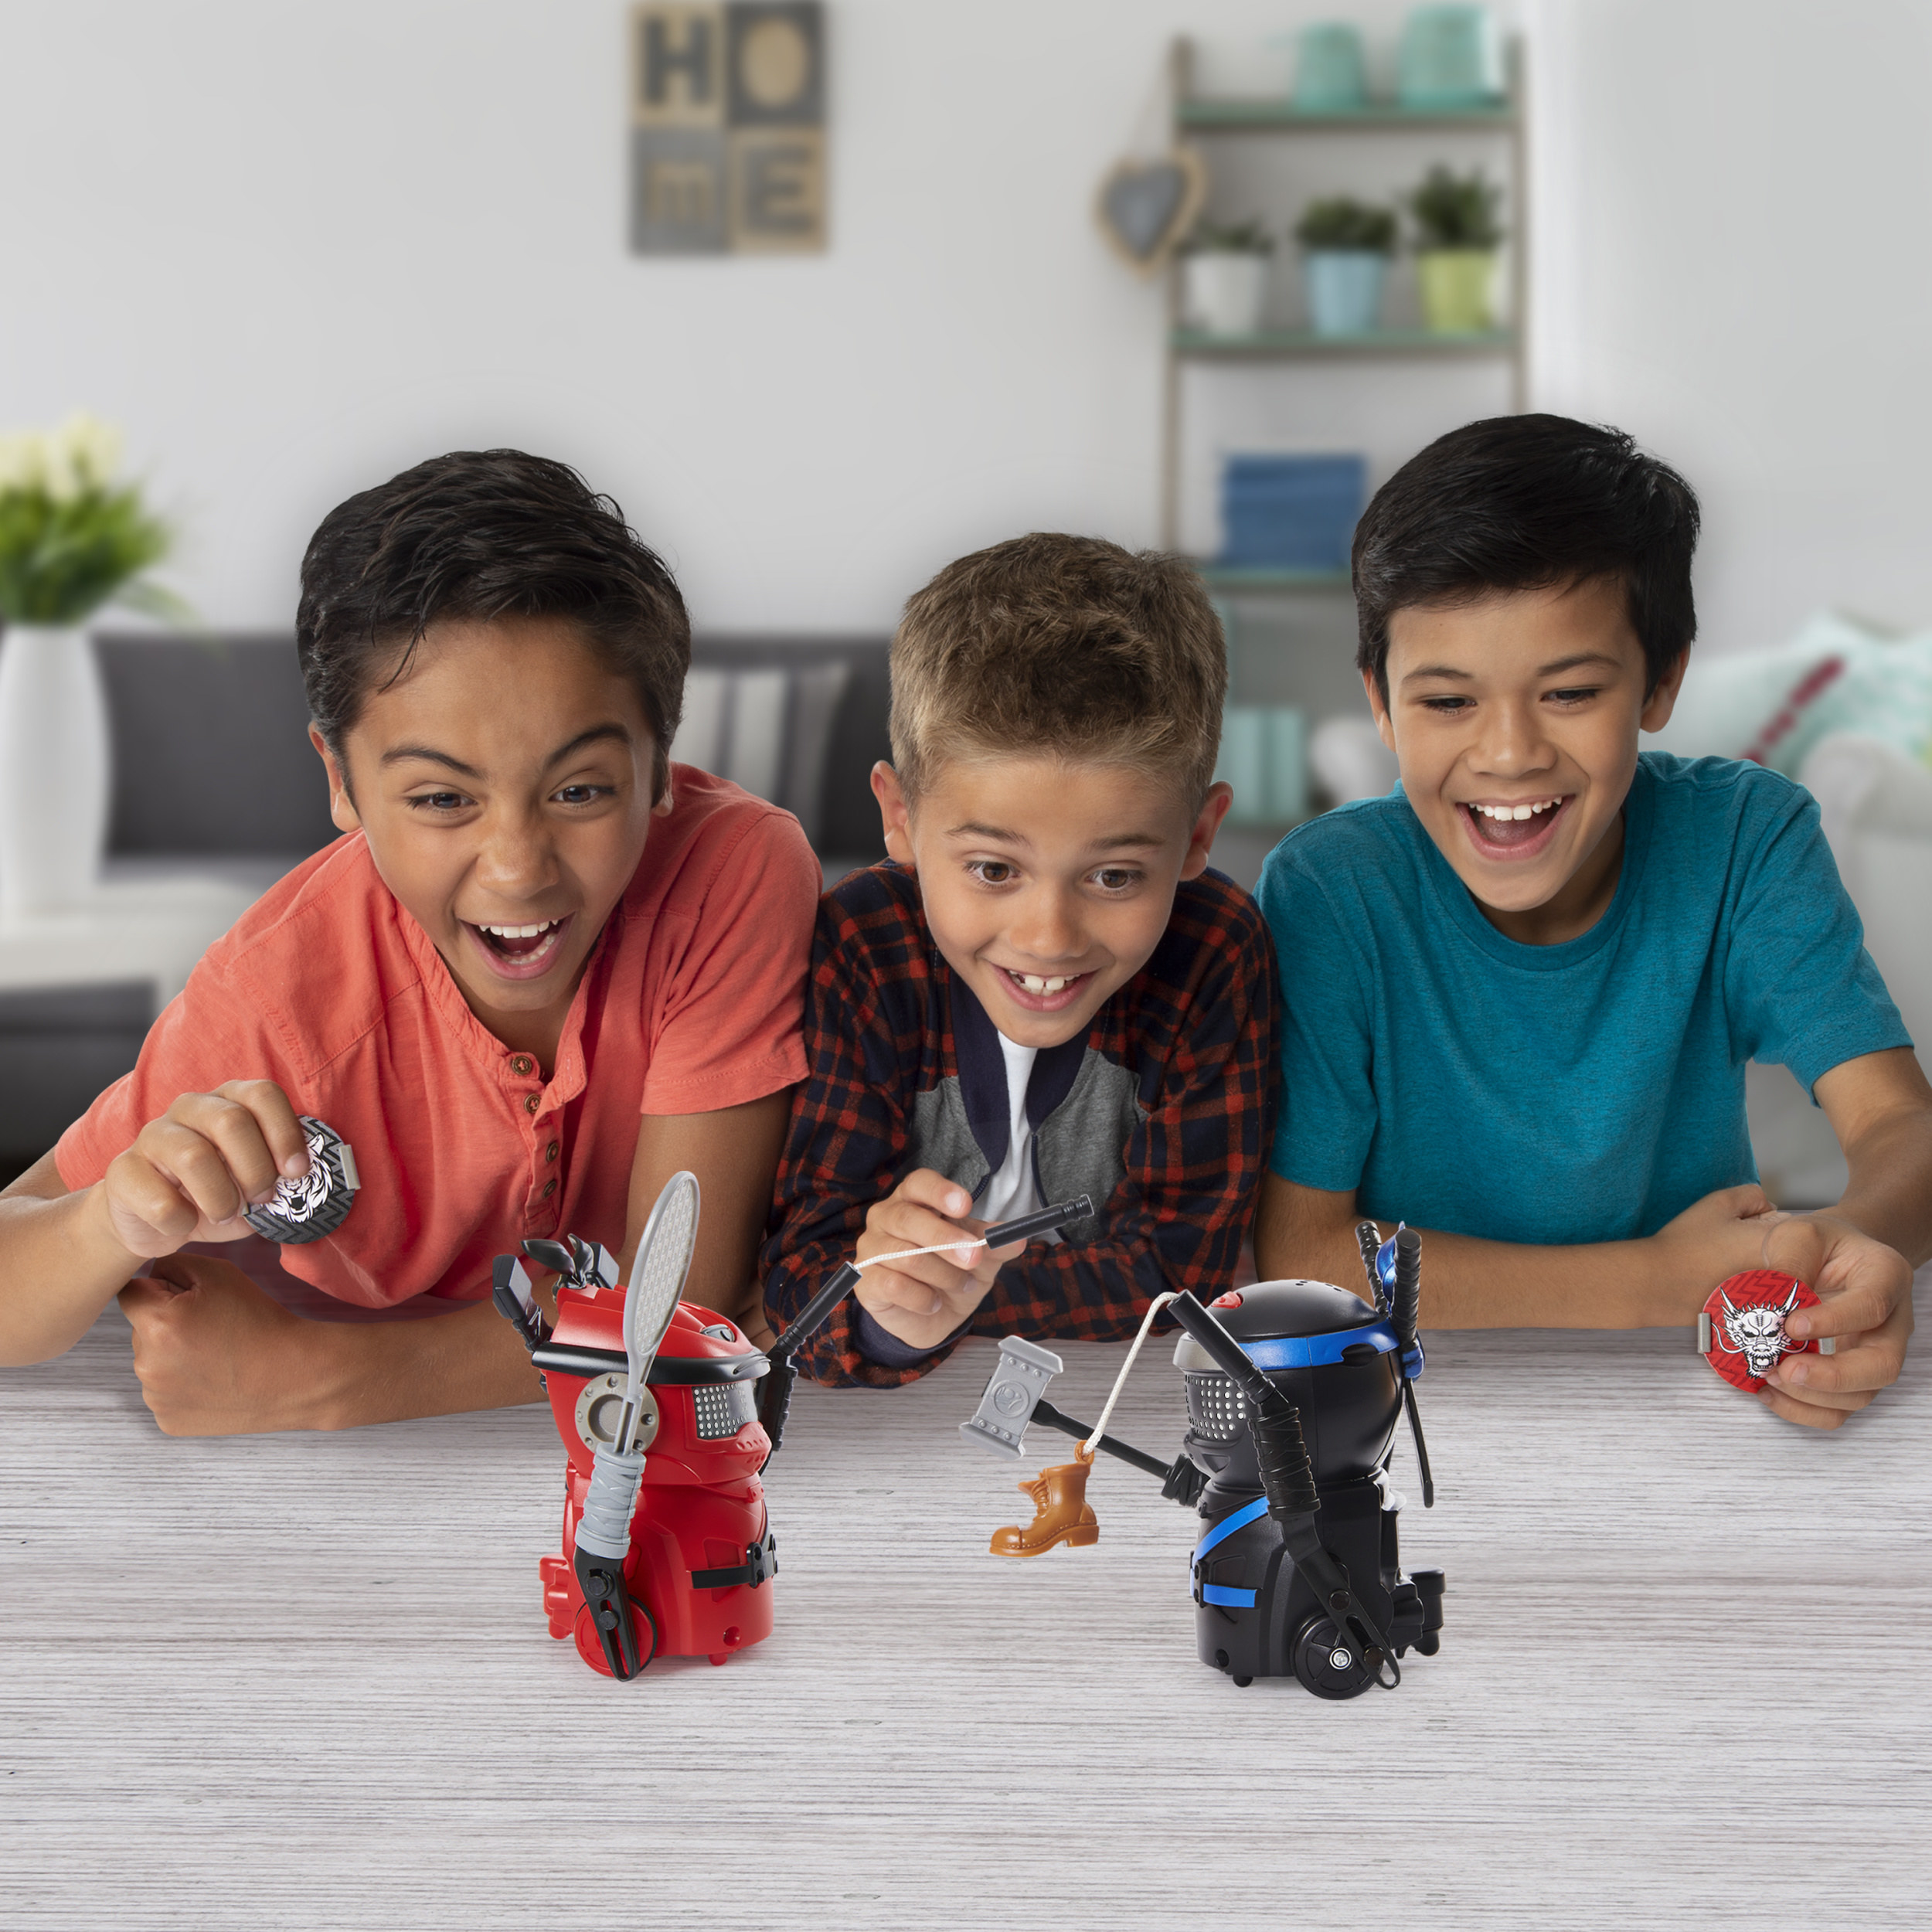 Children playing with the robot toys